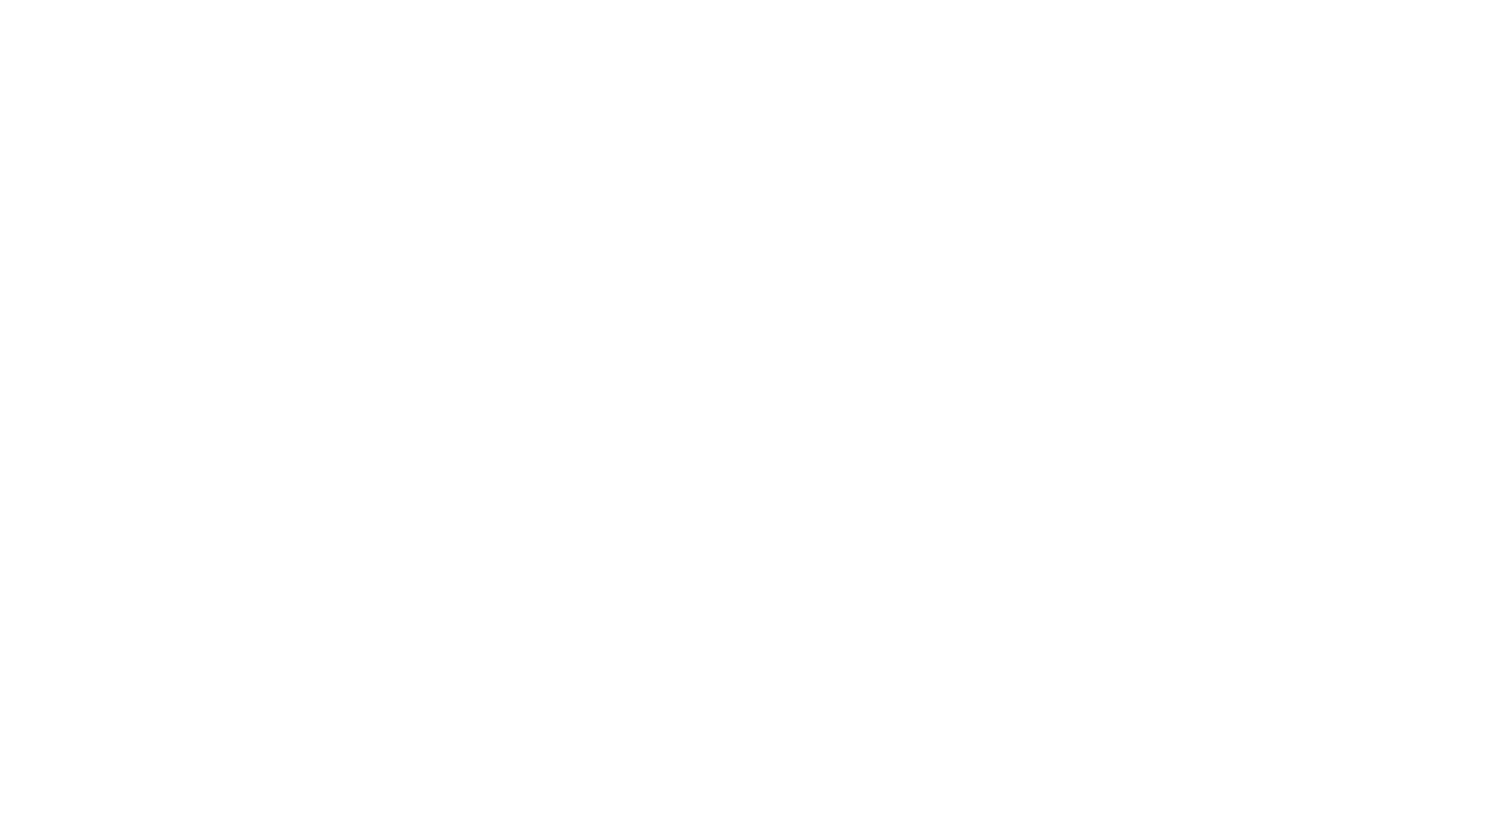 The Giglione-Ackerman Agency